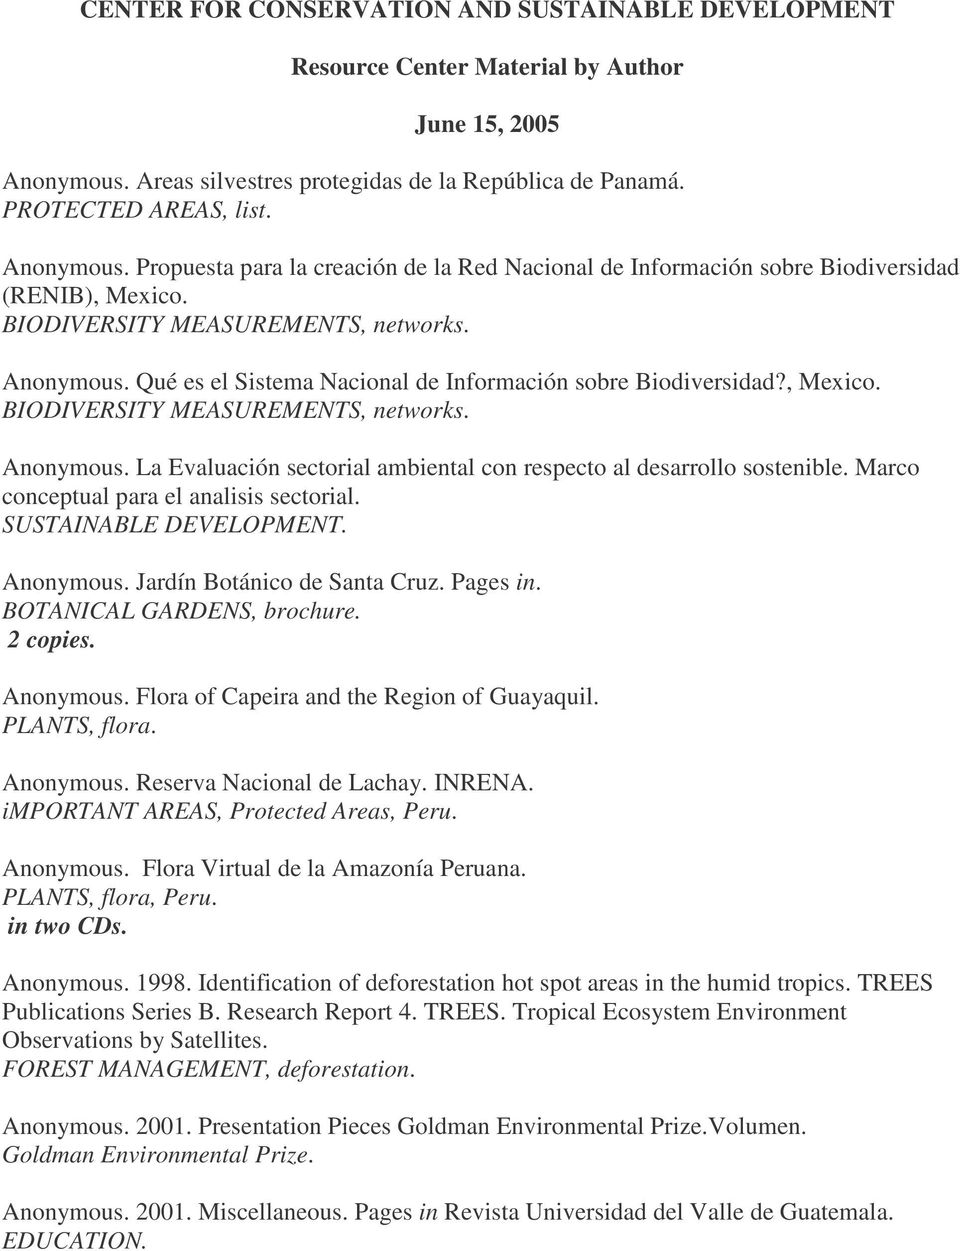 BIODIVERSITY MEASUREMENTS, networks. Anonymous. Qué es el Sistema Nacional de Información sobre Biodiversidad?, Mexico. BIODIVERSITY MEASUREMENTS, networks. Anonymous. La Evaluación sectorial ambiental con respecto al desarrollo sostenible.